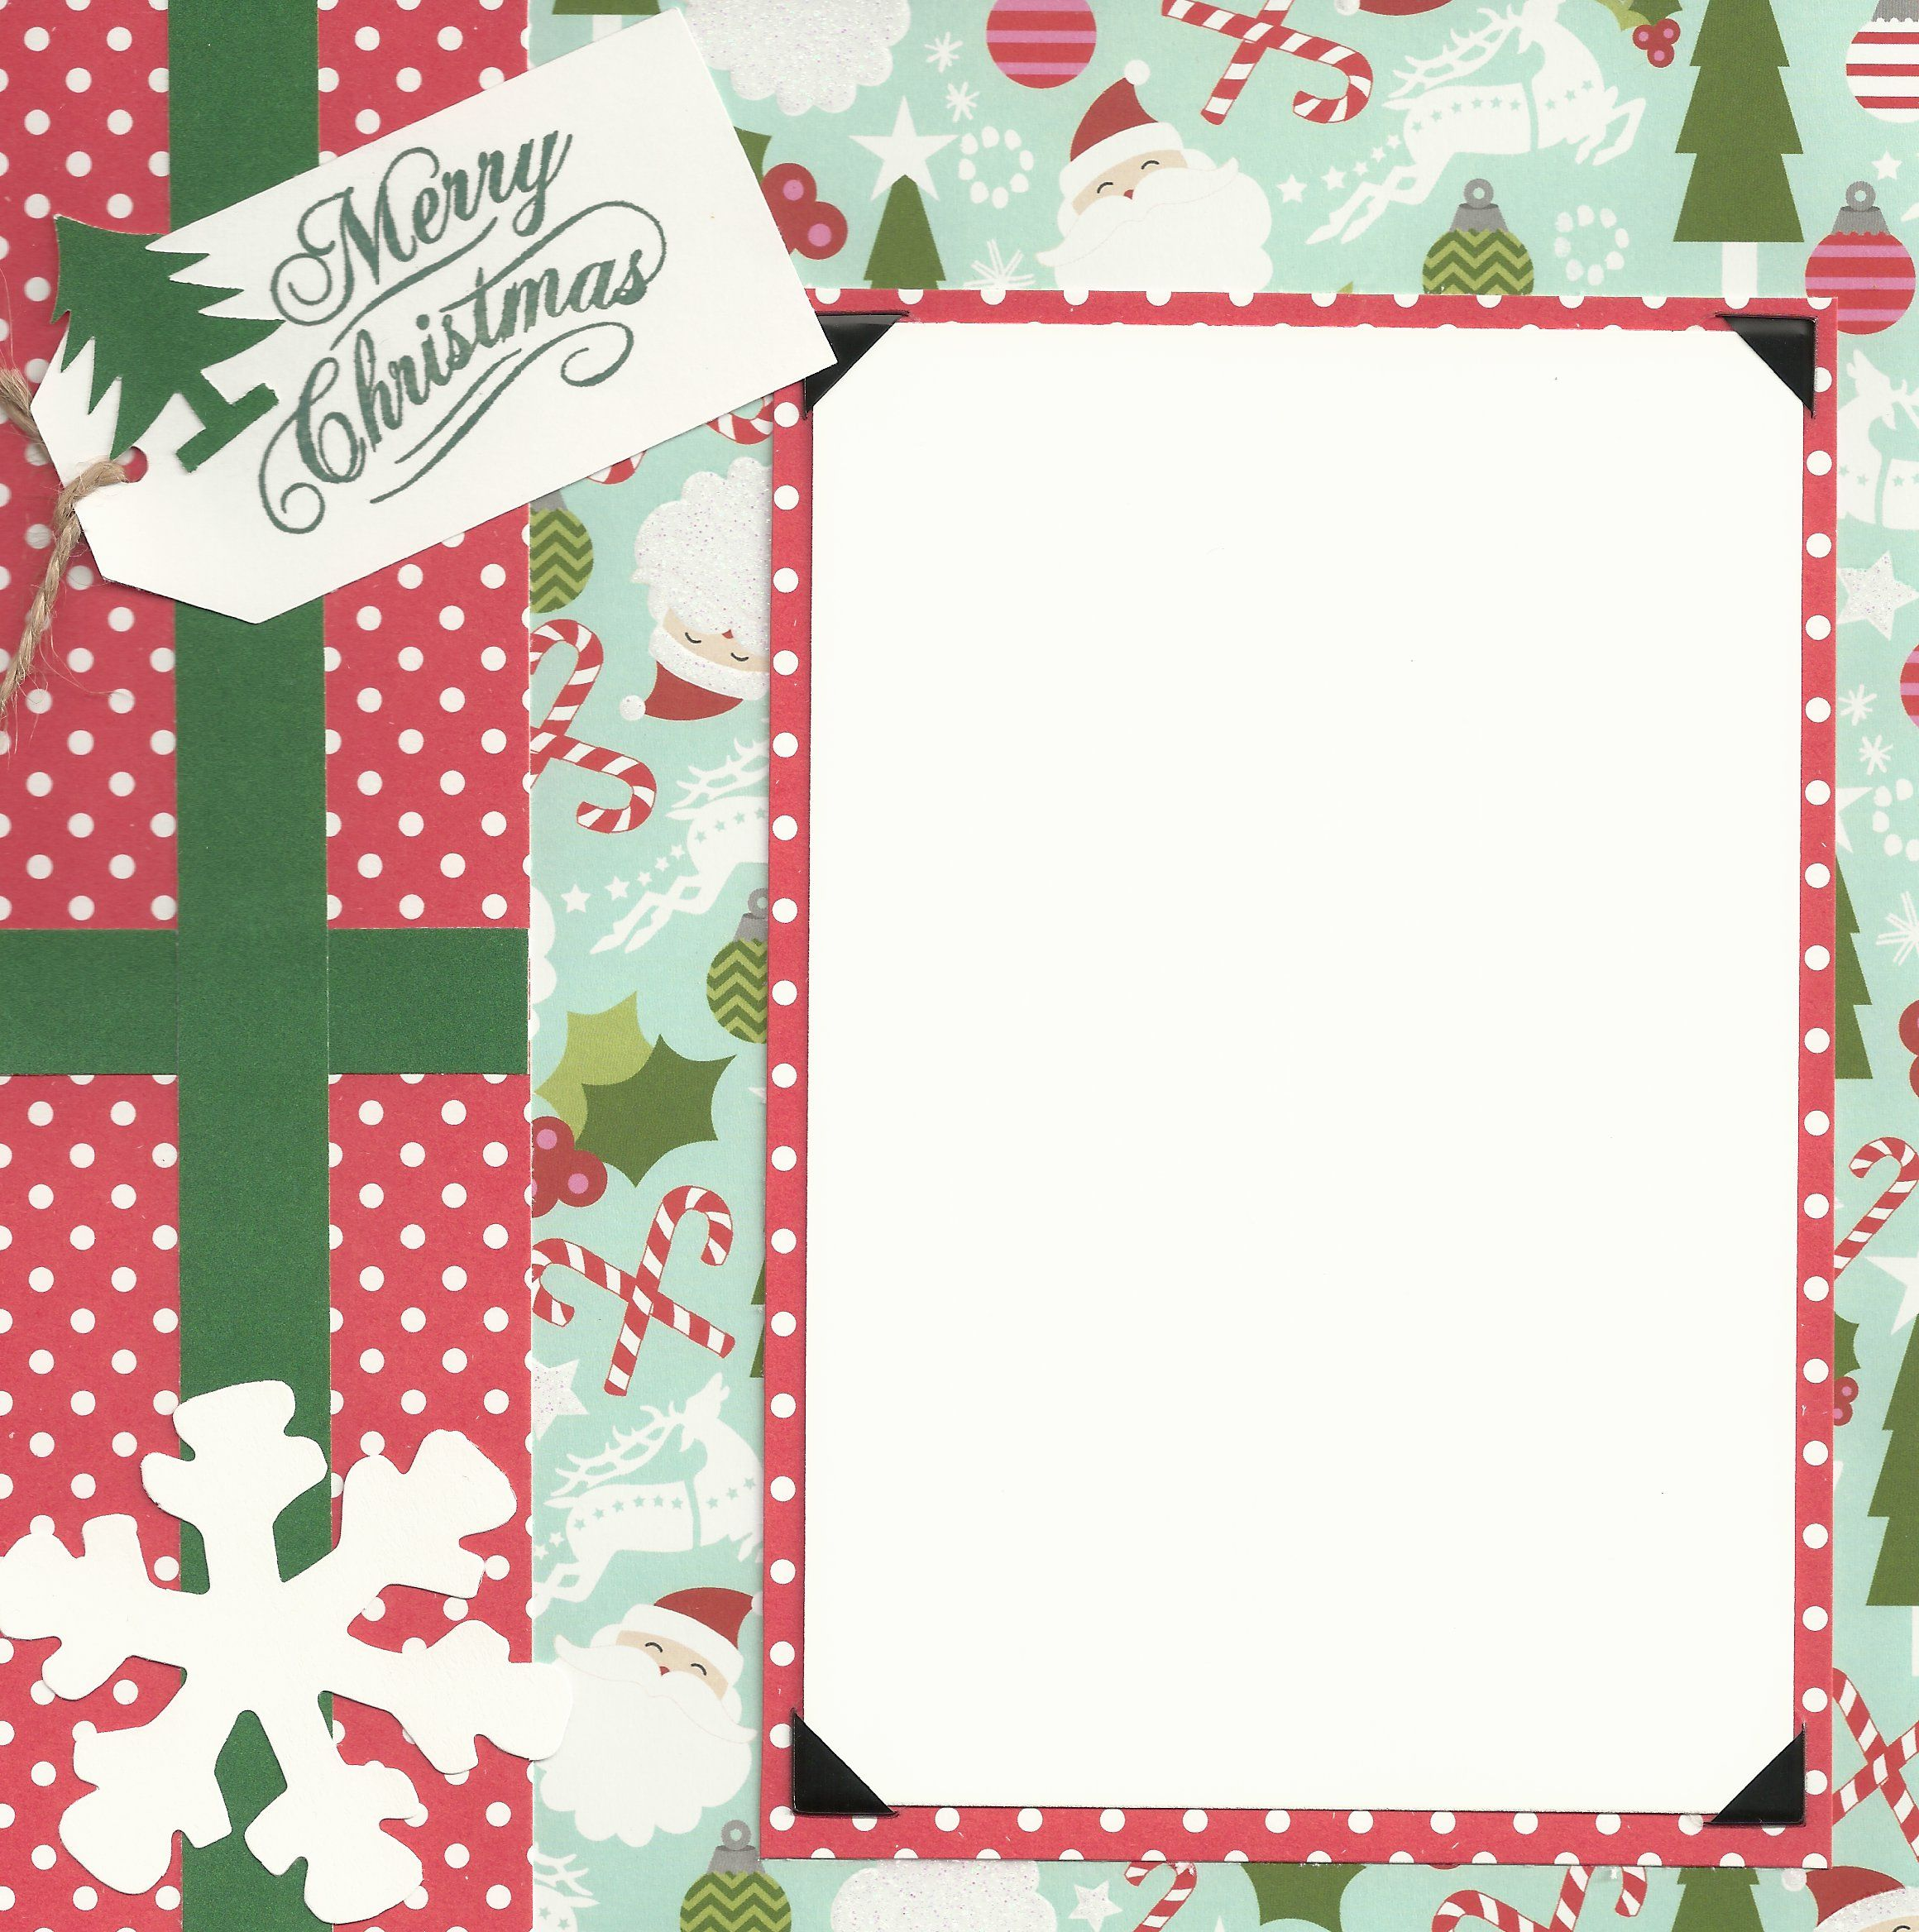 Baby scrapbook page ideas - Baby Scrapbook Page Ideas 8x8 Pages Christmas